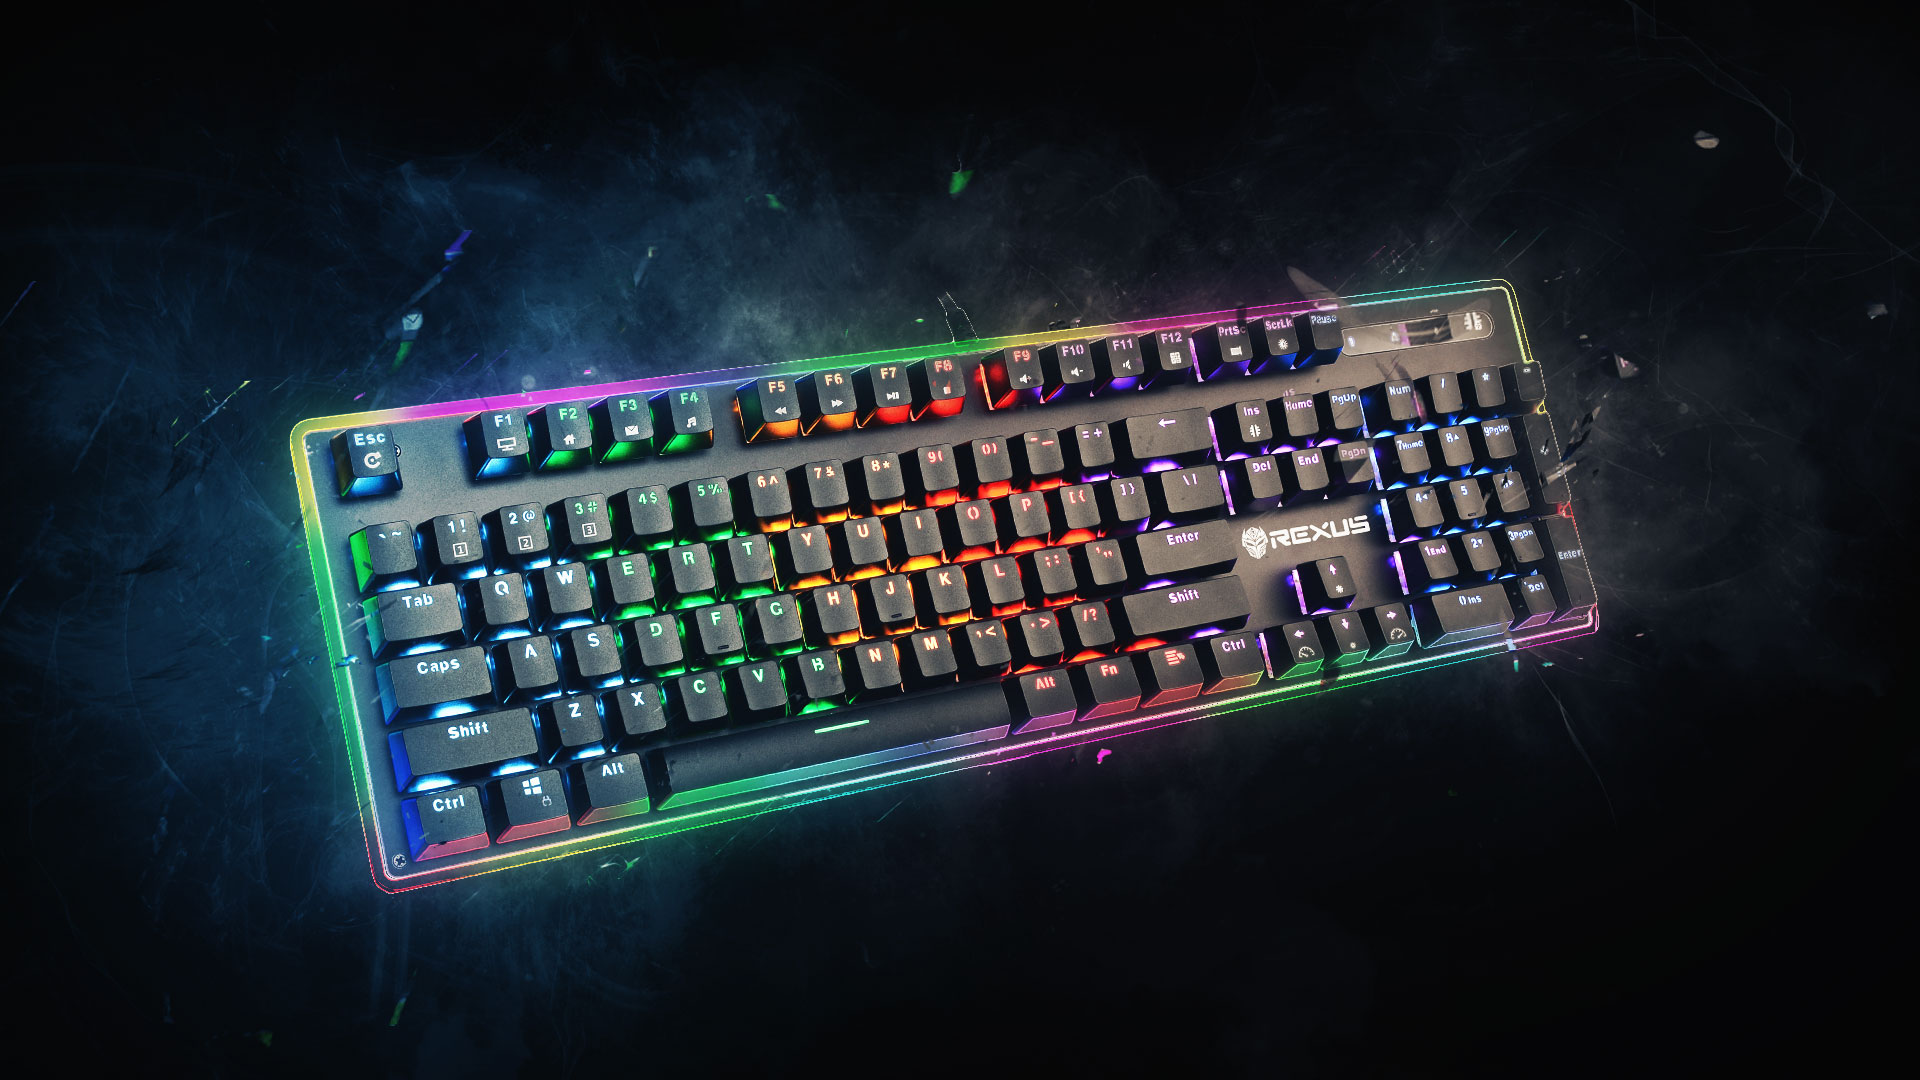 Keyboard Gaming Rexus Legionare MX10 Artwork  Rexus Indonesia | Made For Everyone MX10 06